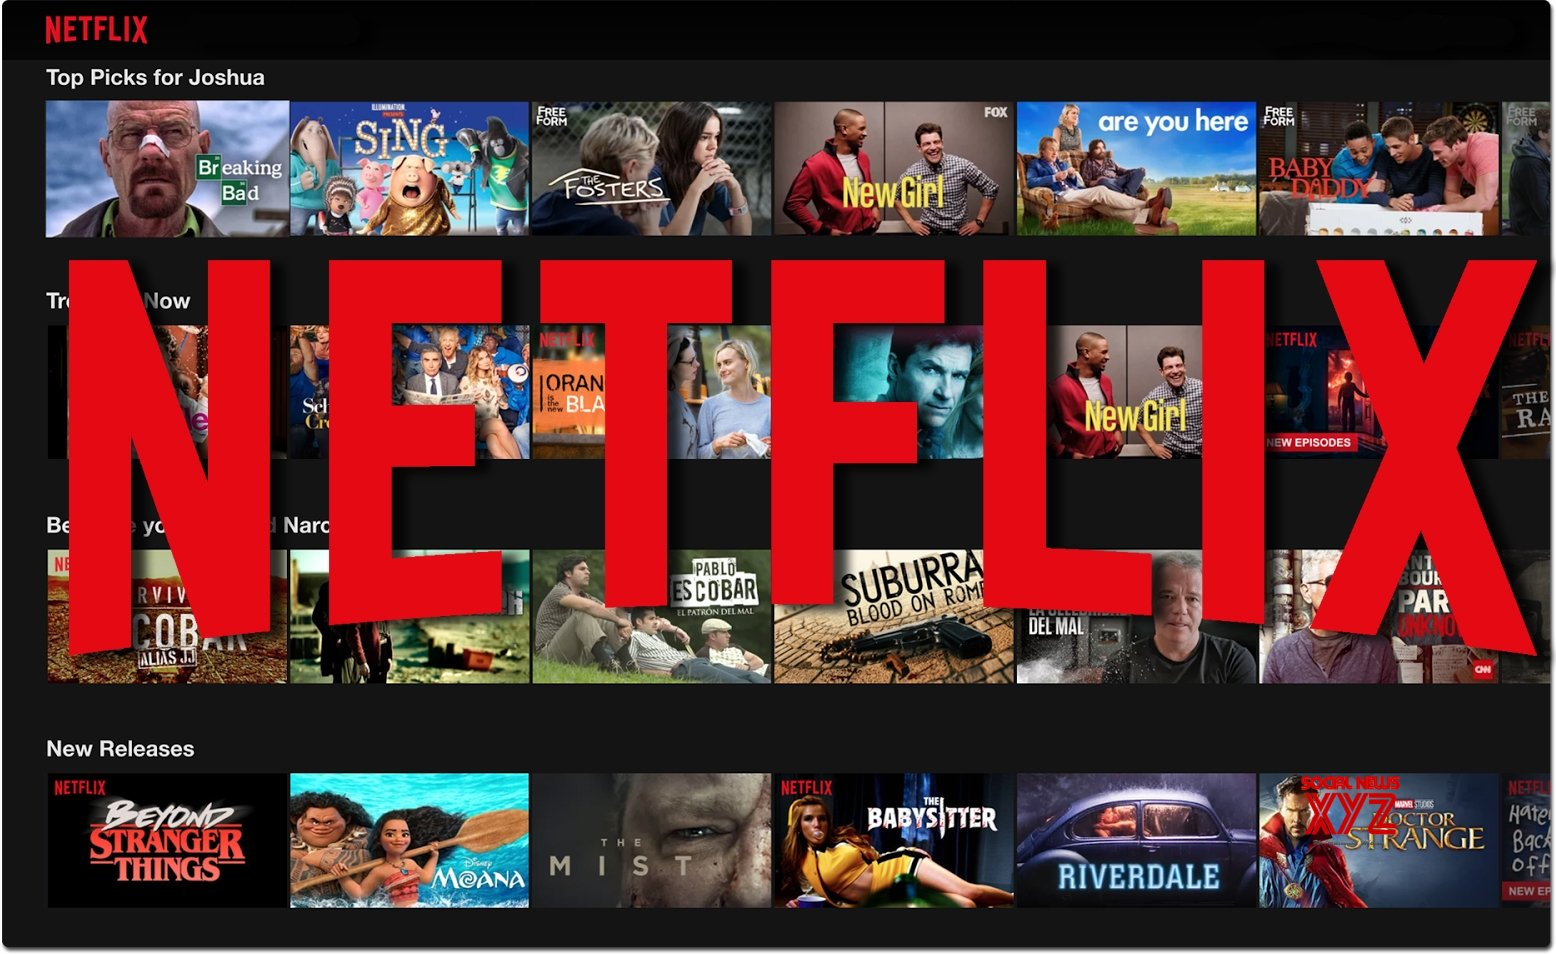 Netflix to end support for older Roku players in Dec